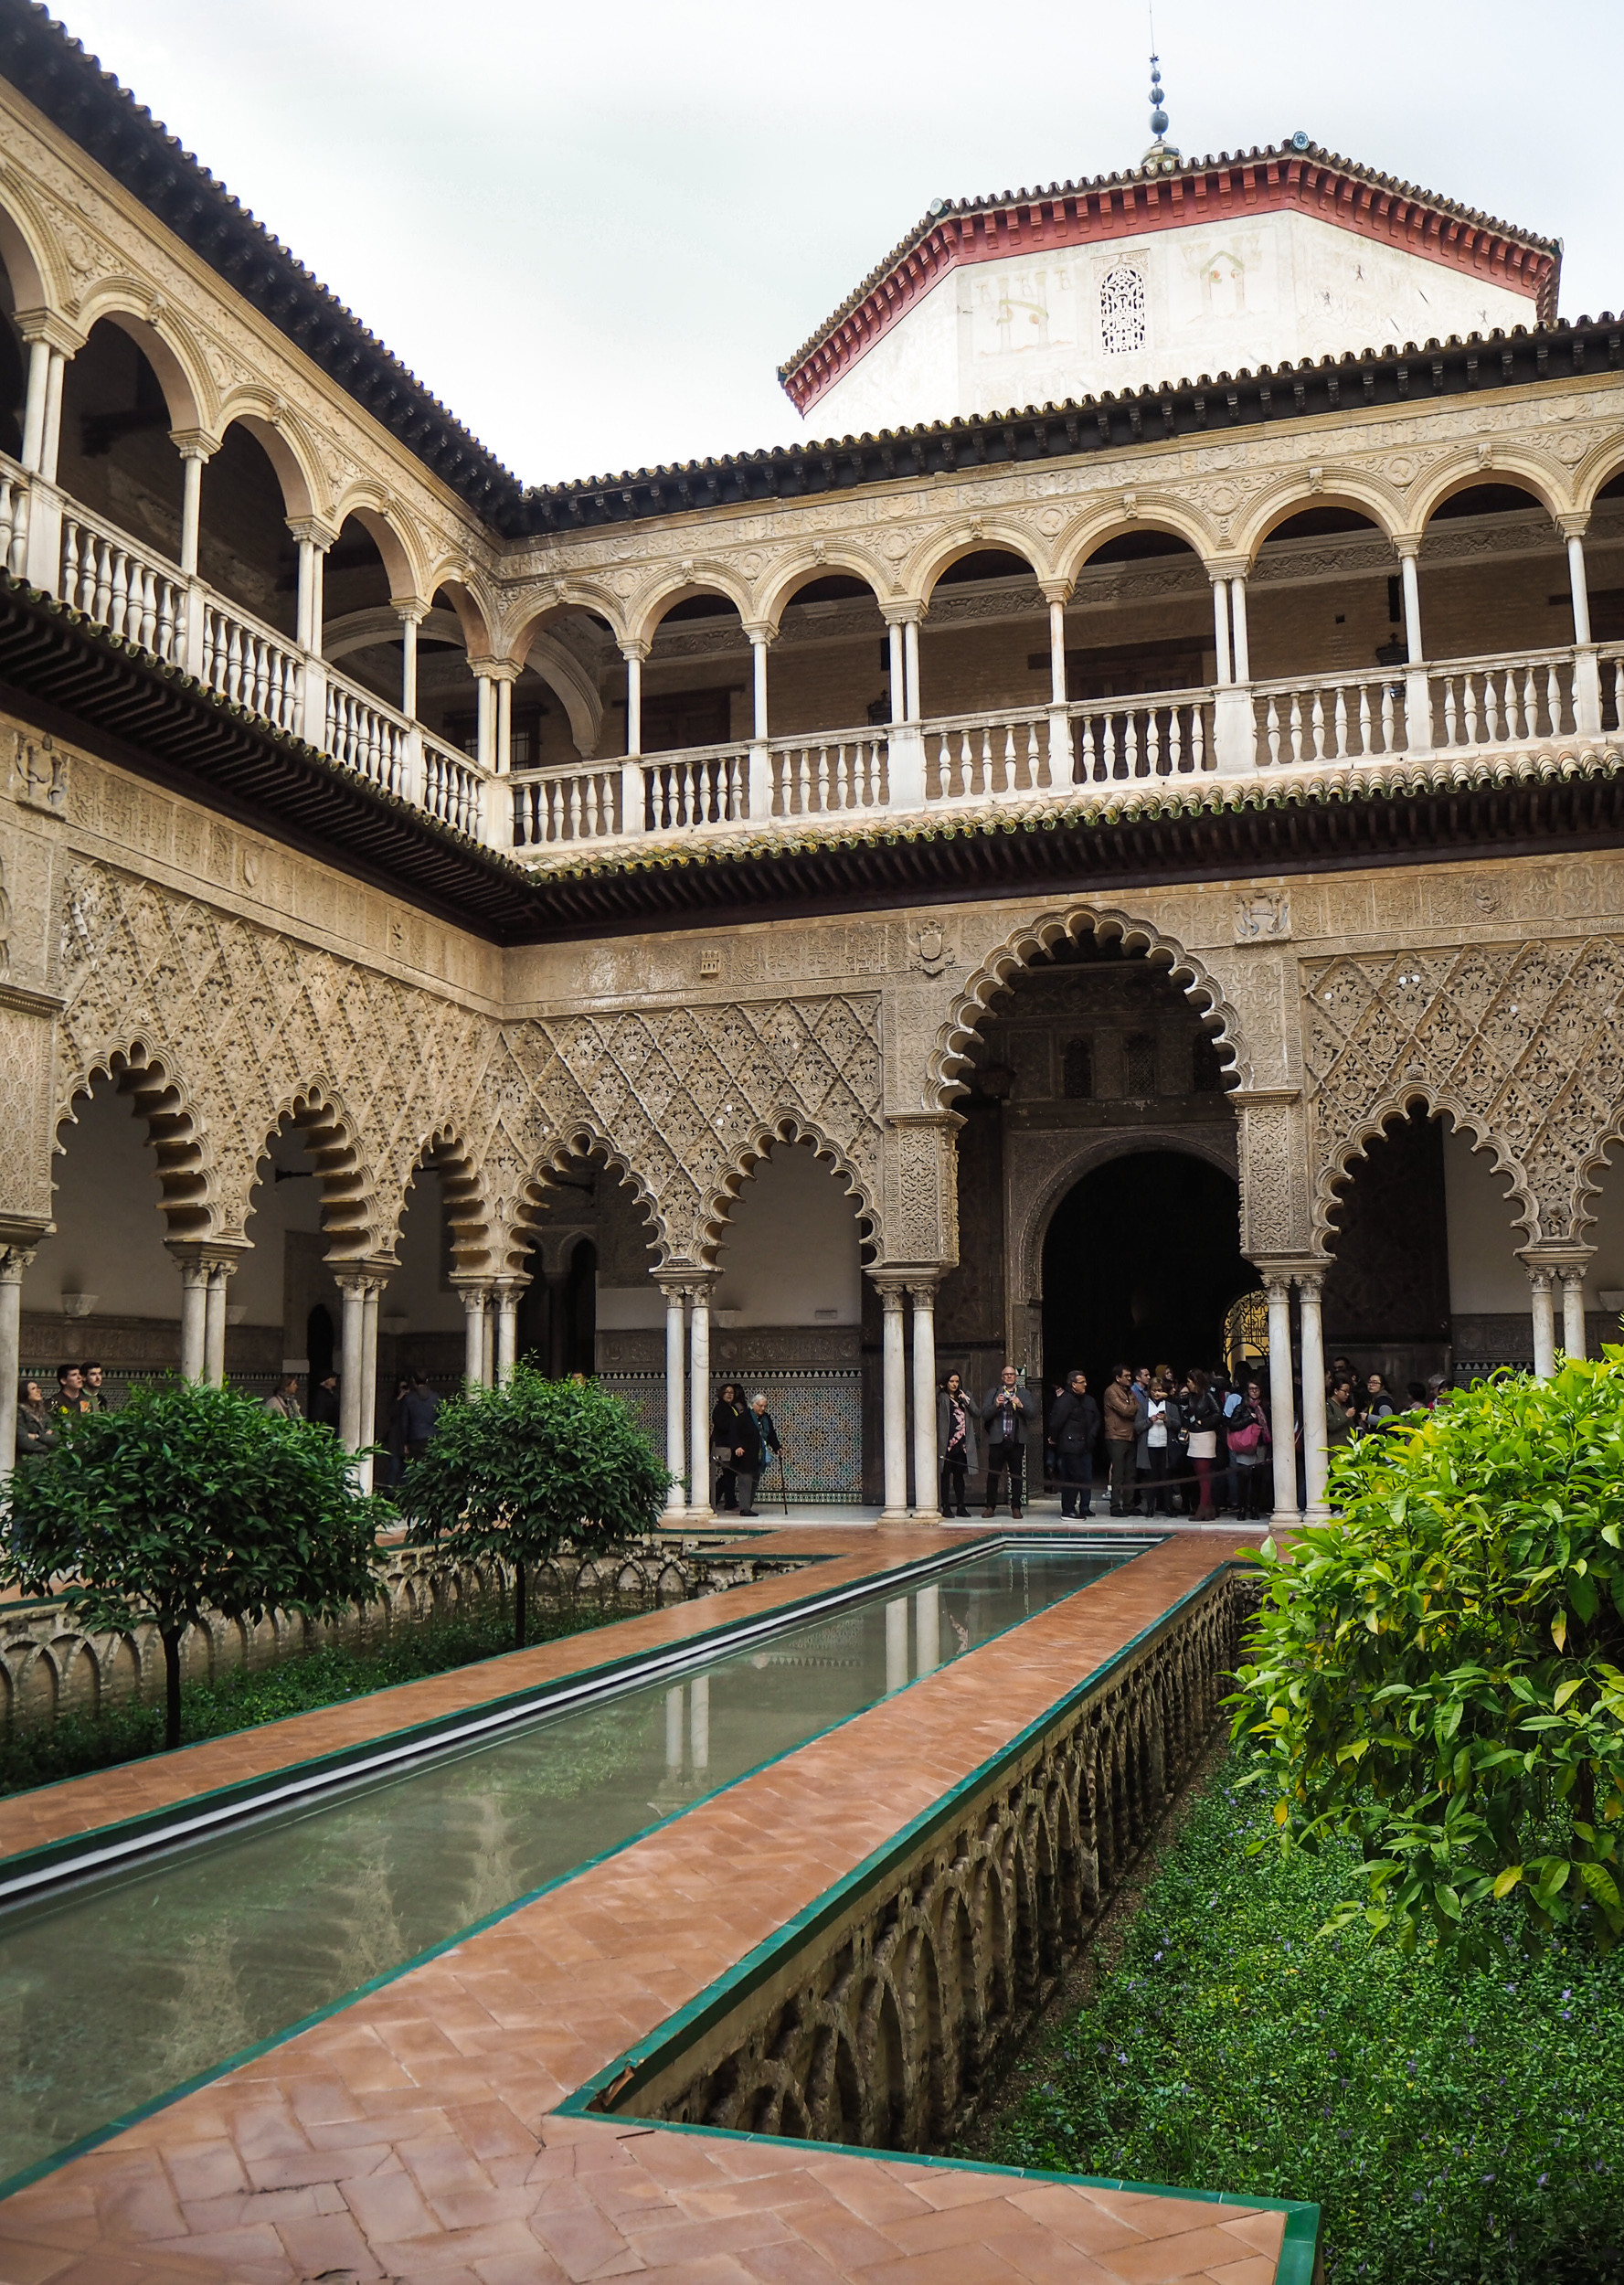 Following the Arab Influences in Spain: The Alcazár of Seville